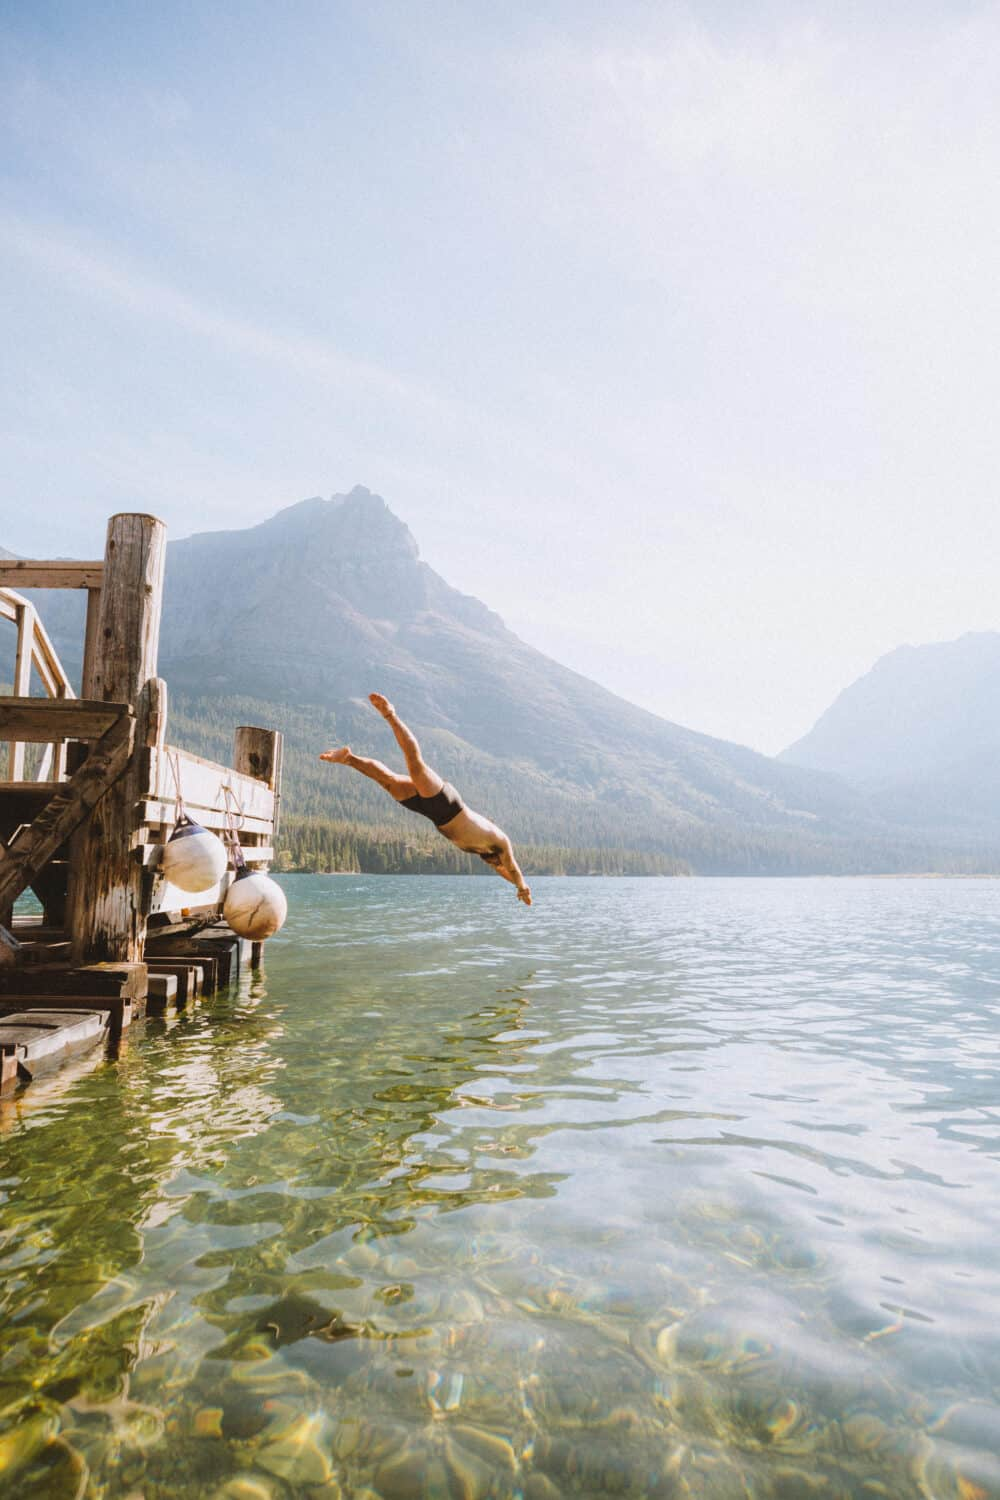 Summer in the Pacific Northwest - jumping in lakes of Glacier National Park